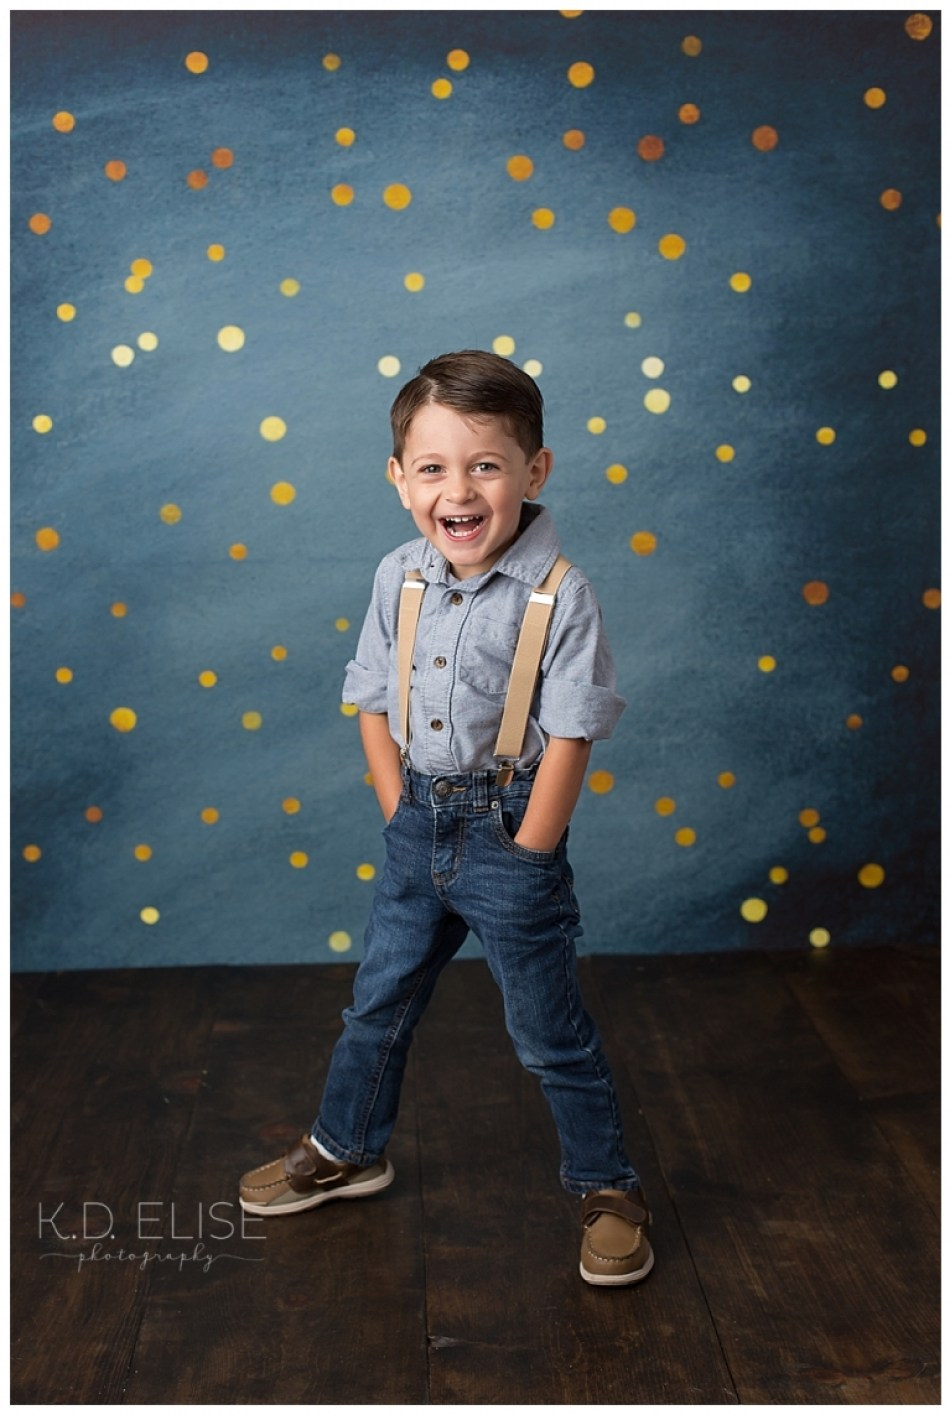 Three year birthday portrait of little boy in blue jeans and blue shirt with suspenders in front of a blue and gold backdrop.